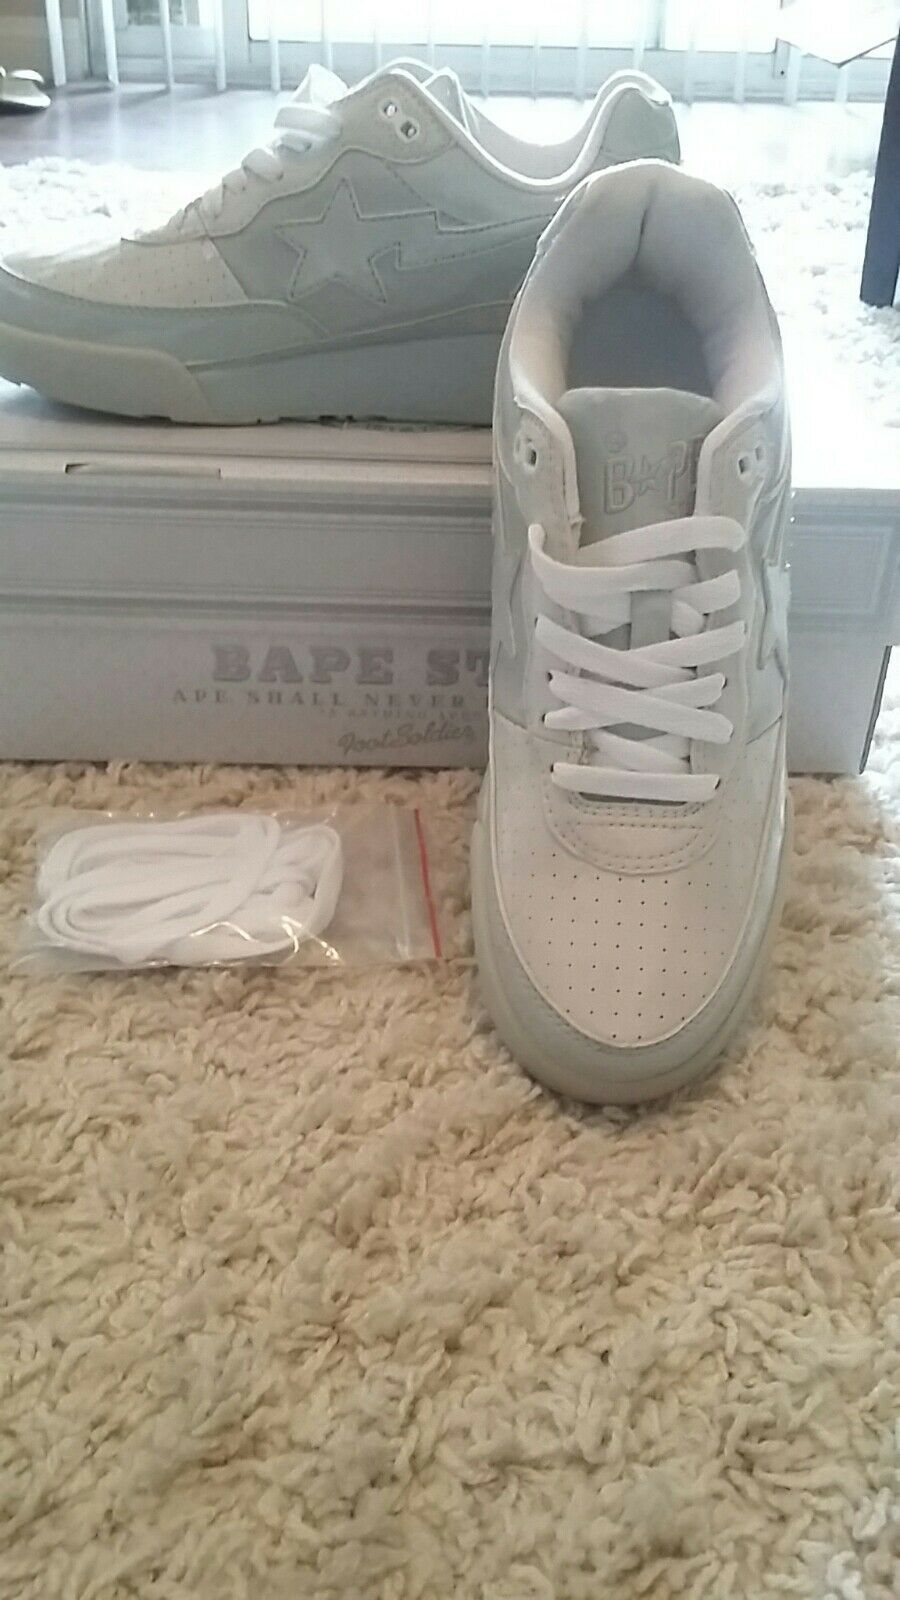 A BATHING APE(BAPE) BRAND NEW AUTHENTIC BAPESTAS In GREY ON GREY HIGH GLOSS